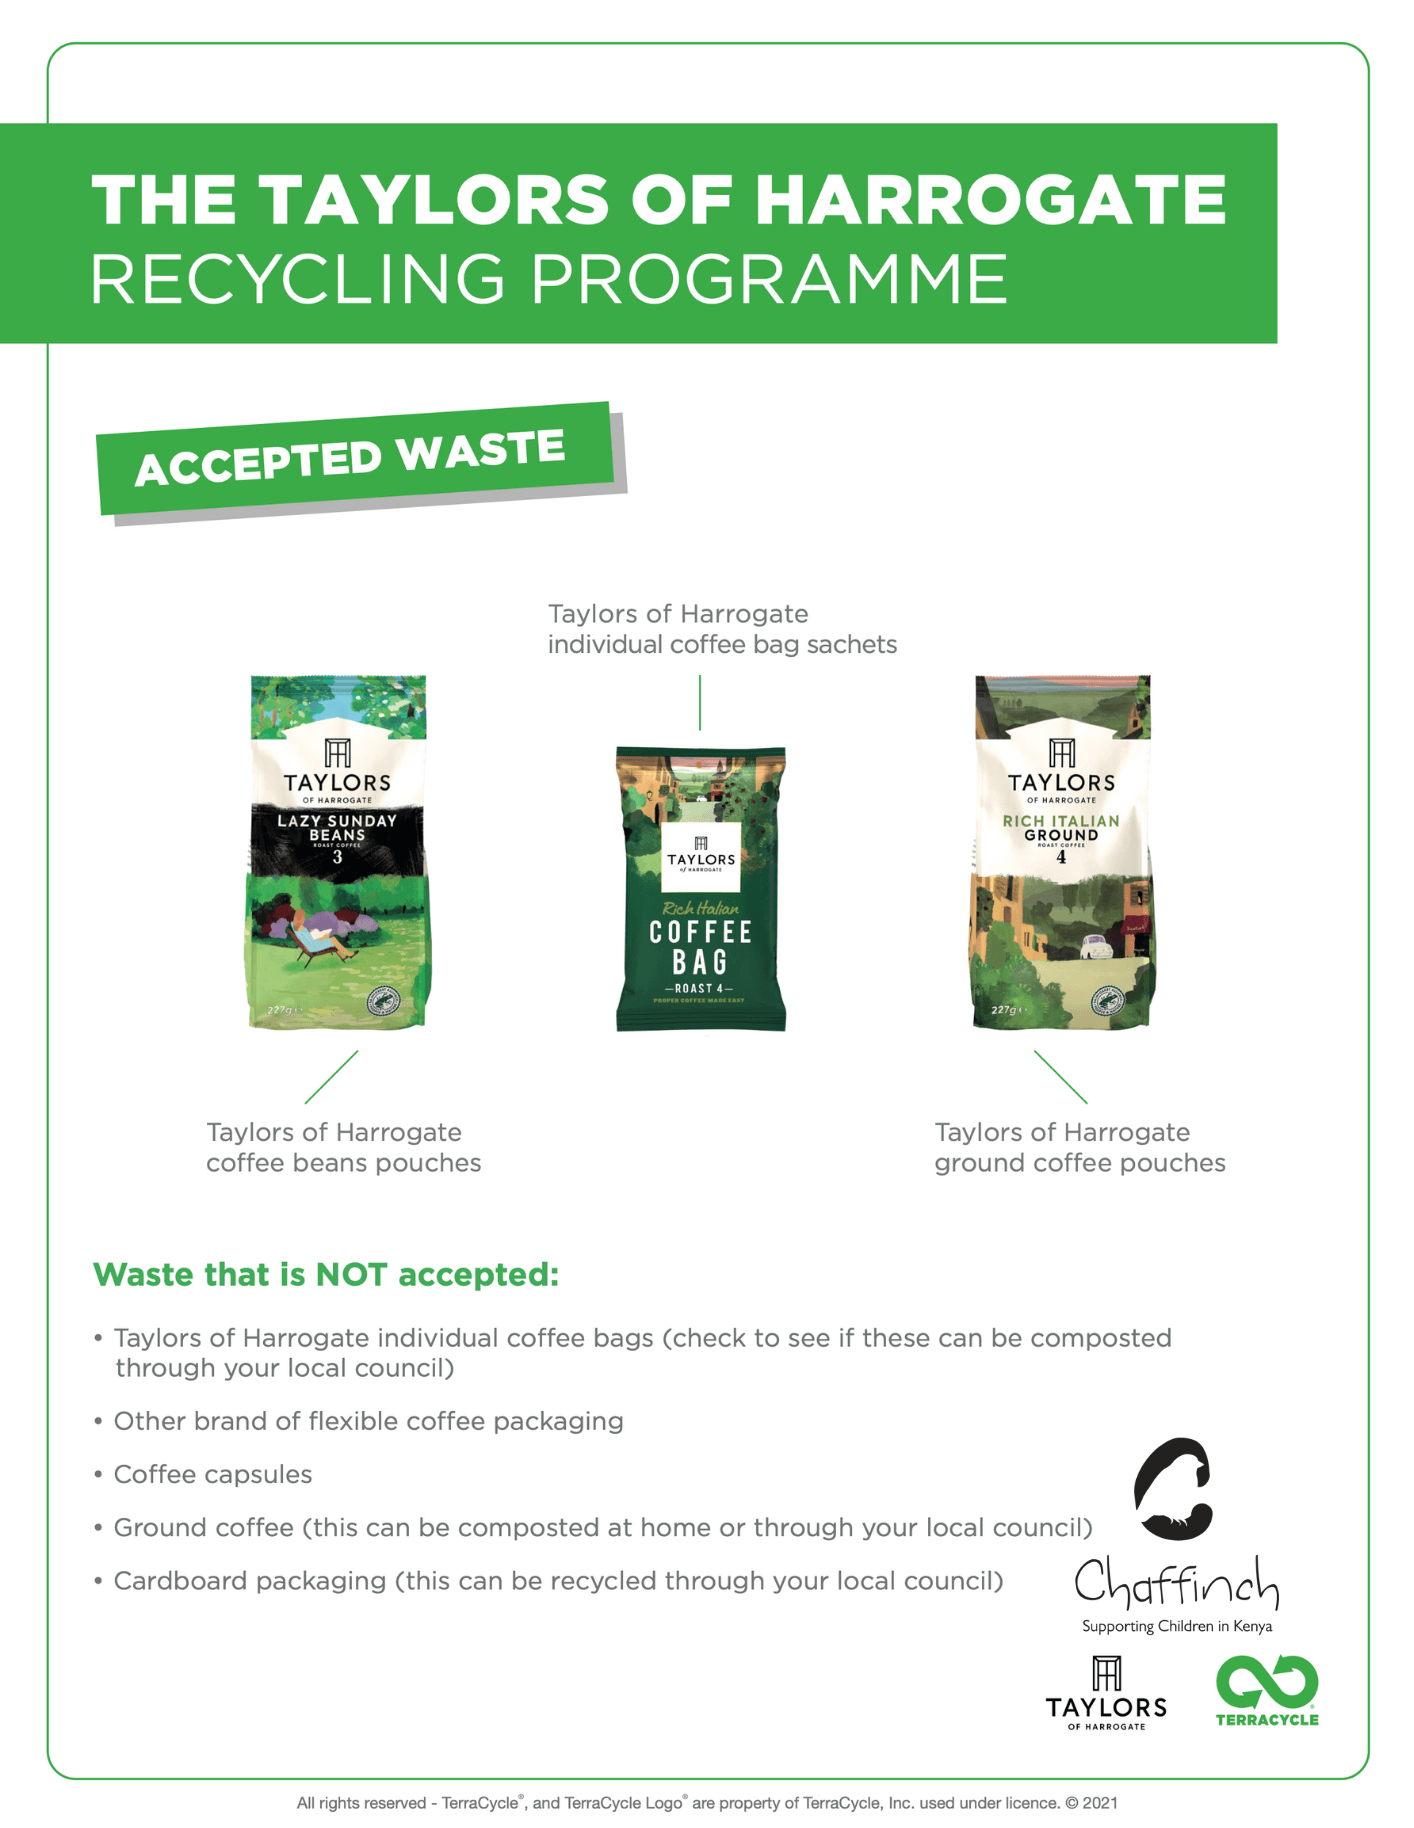 Accepted waste: Taylors of Harrogate coffee pouches and coffee bag sachets.